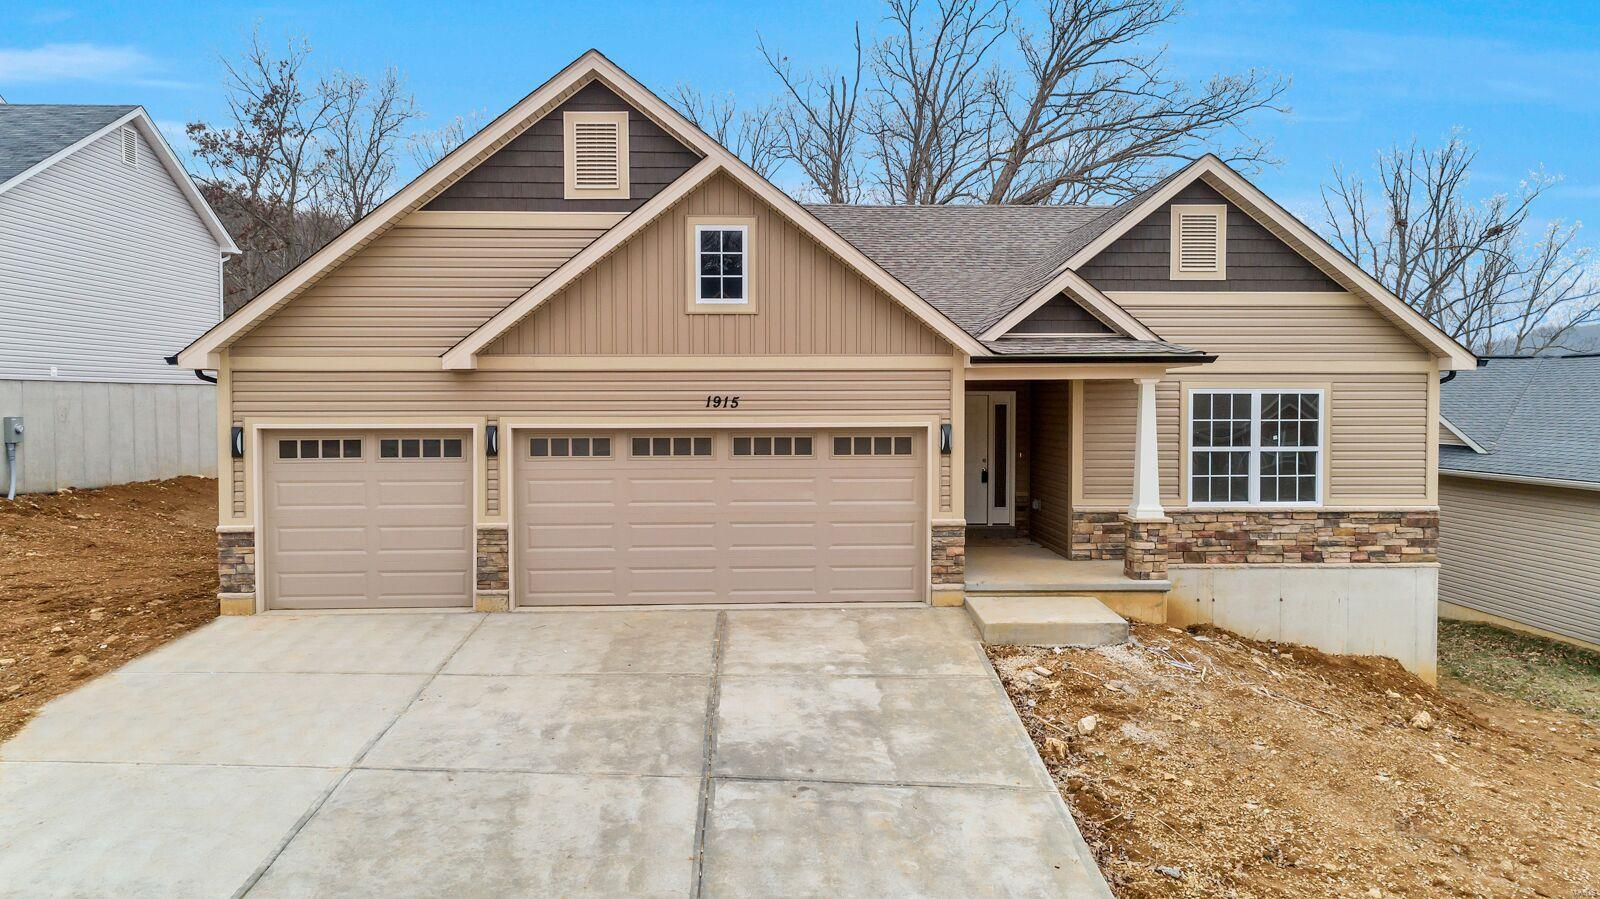 1343 Grey Wolf (Lot 151) Property Photo - Imperial, MO real estate listing